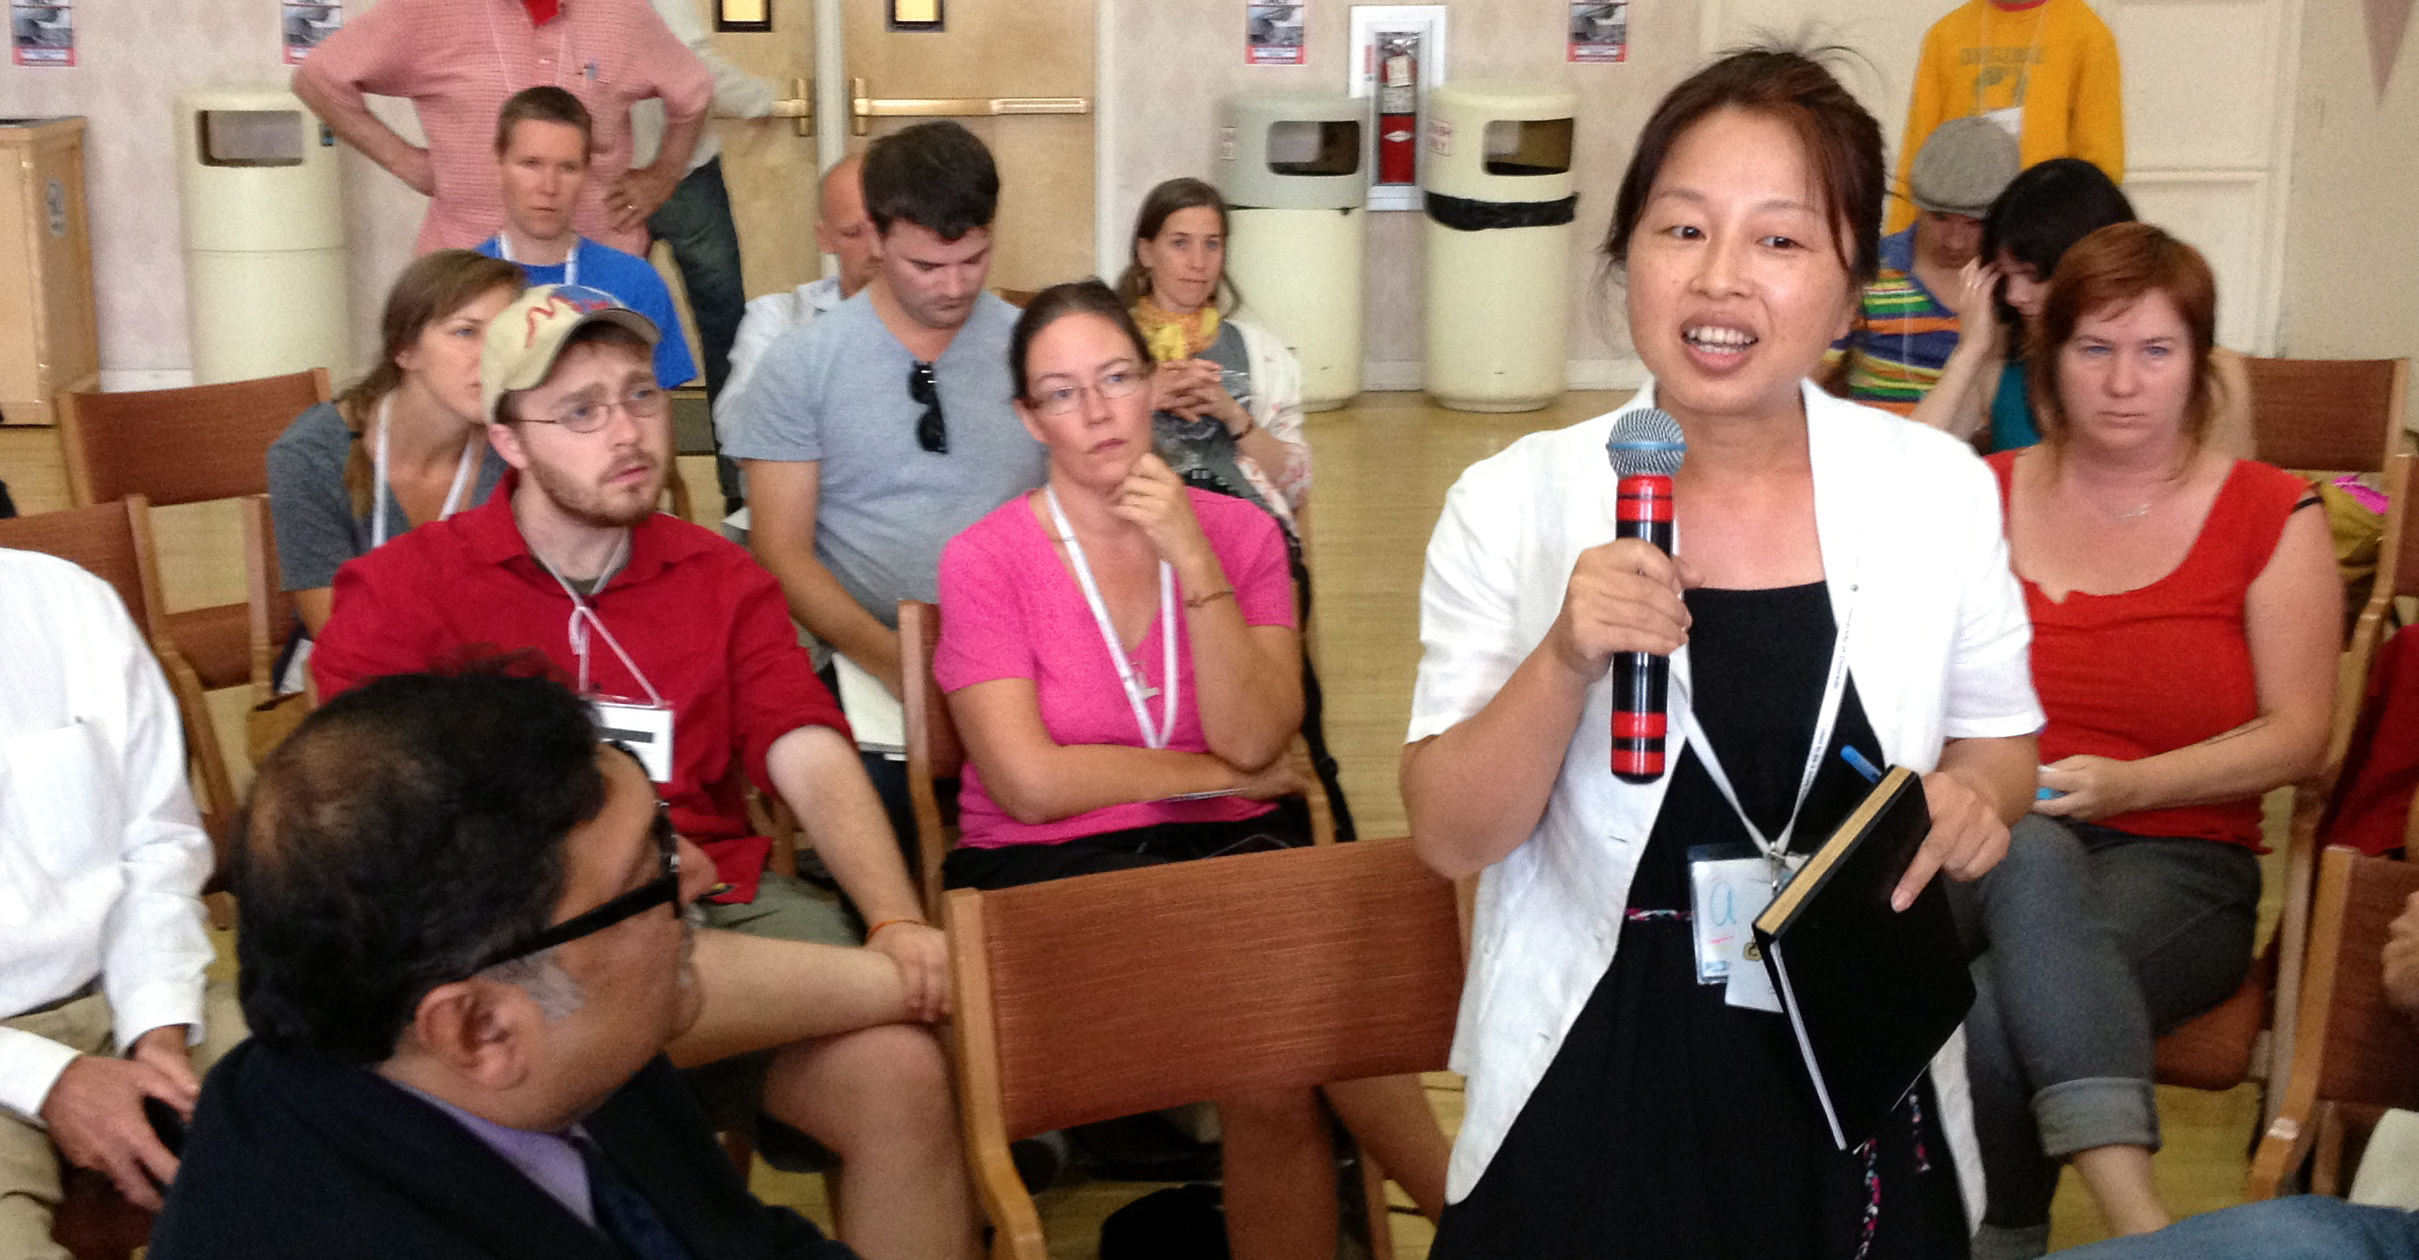 Ann Qiu speaks at the 2013 International Democratic Education Conference as Sugata Mitra and attendees listen.